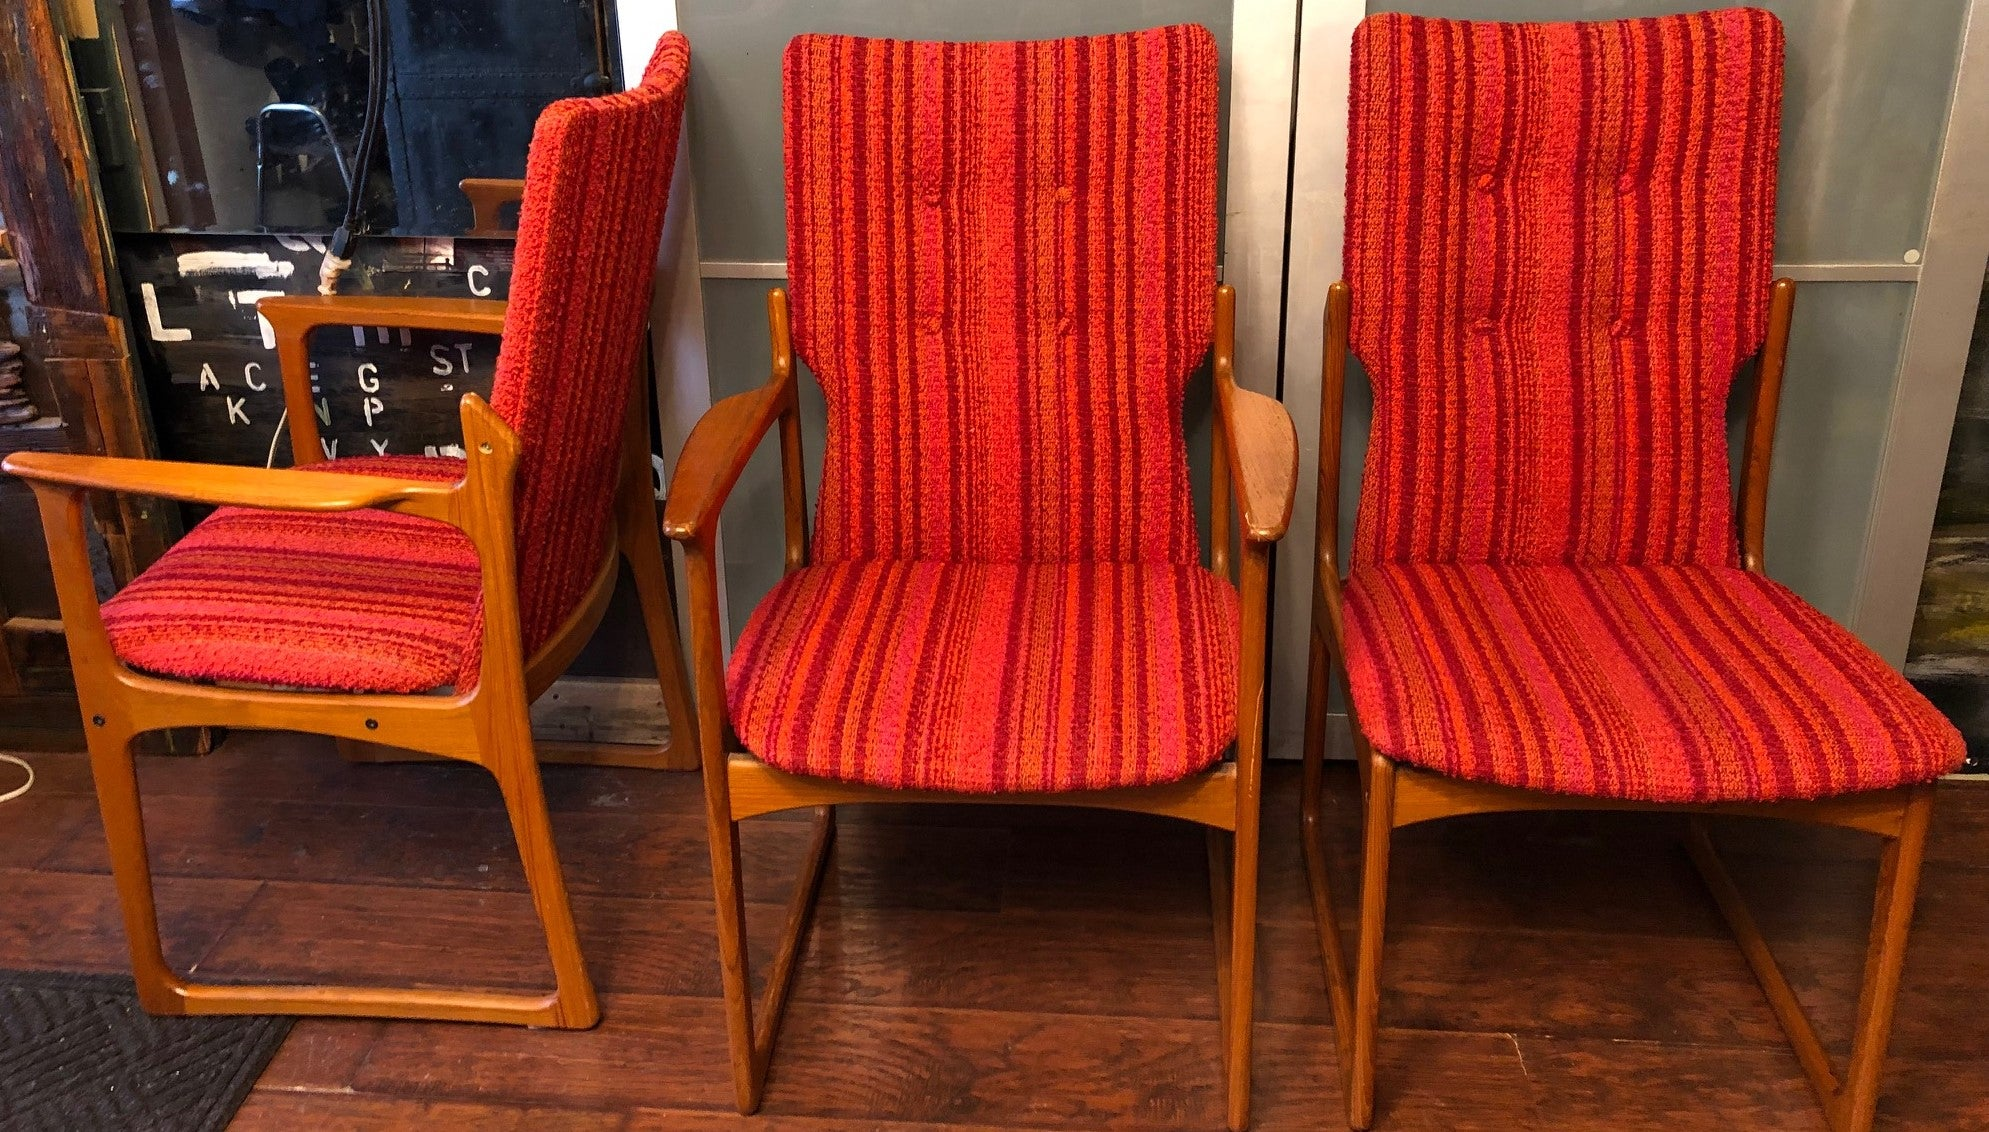 Groovy 6 Danish Mcm Solid Teak Dining Chairs Restored By Vamdrup Beatyapartments Chair Design Images Beatyapartmentscom